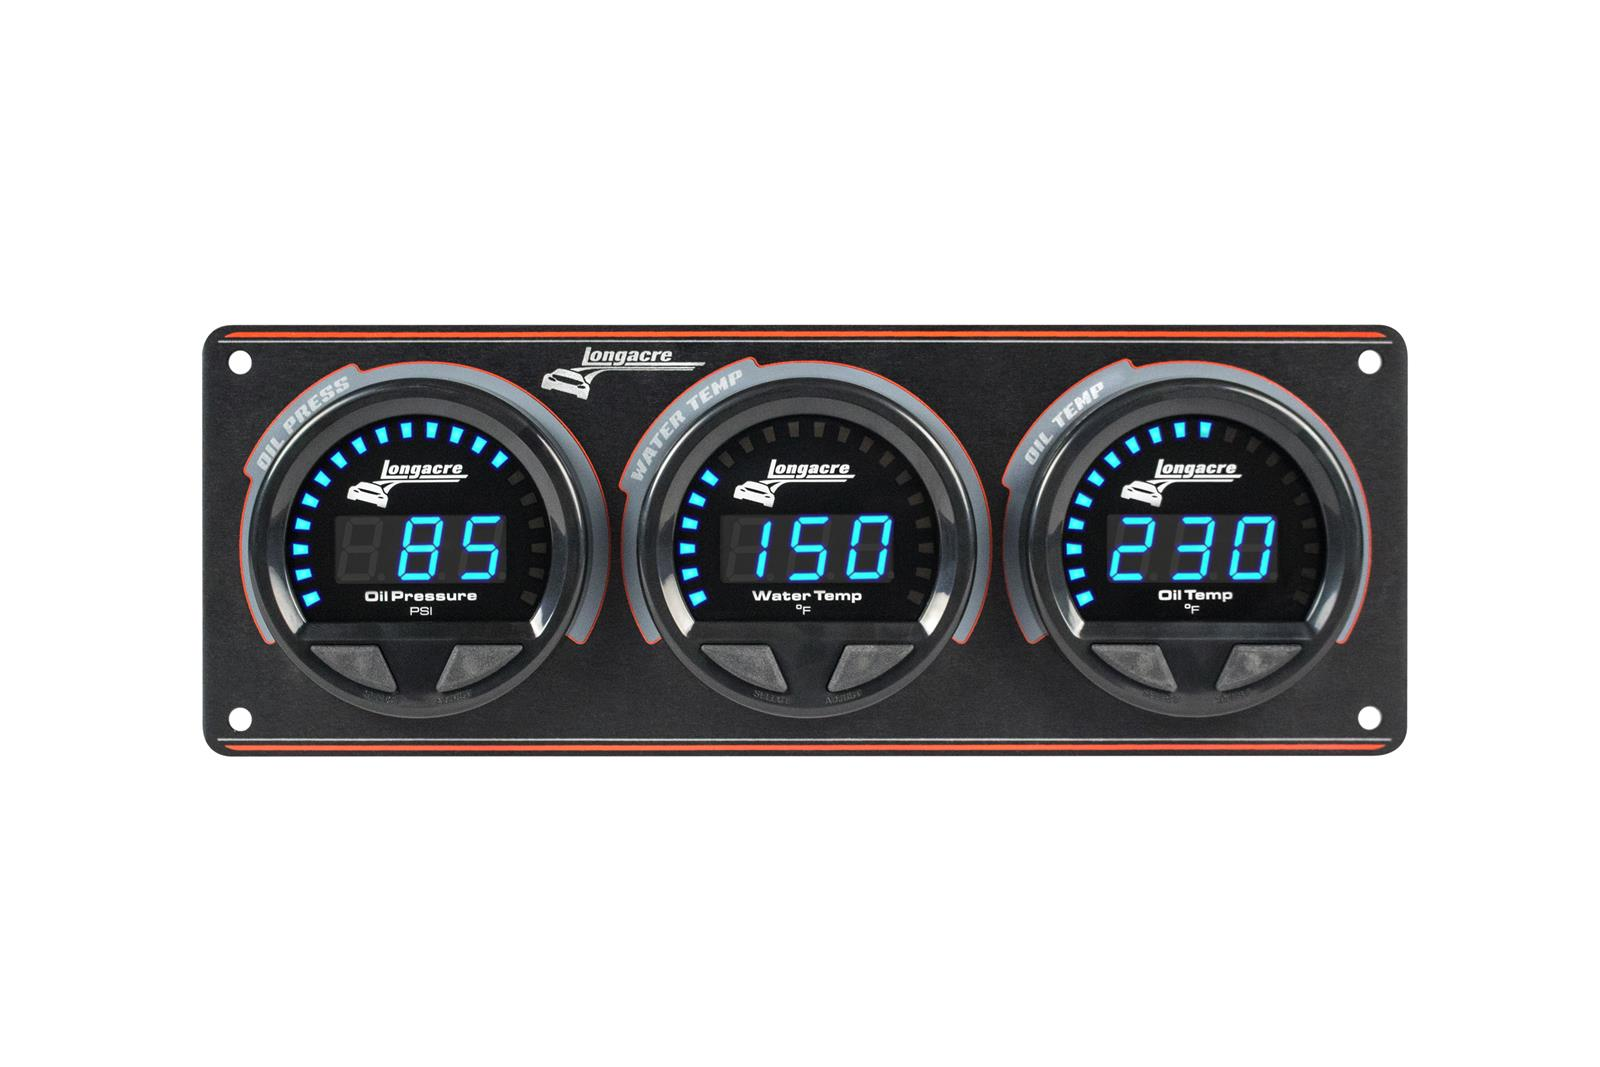 Digital Elite Waterproof Gauge Panel, 3 Gauge Oil Pressure/Water Temperature/Oil Temperature 340°